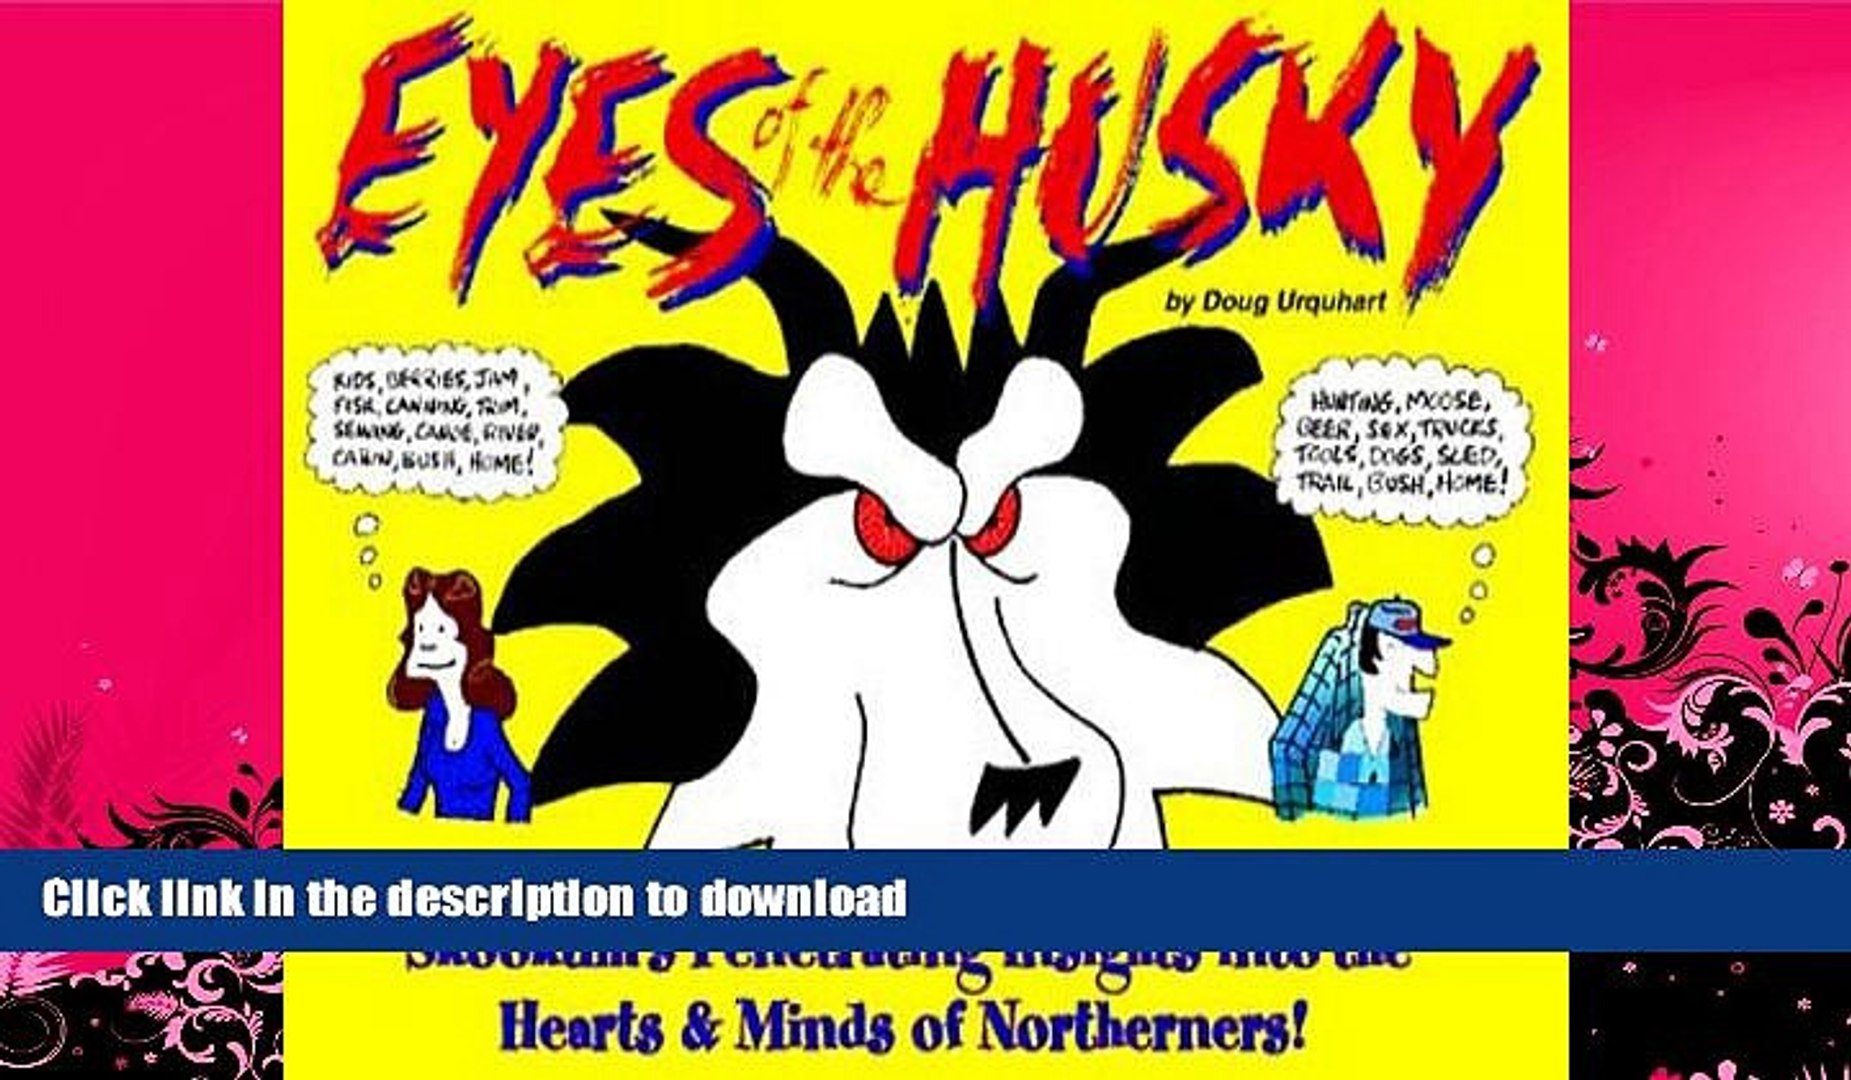 READ  Eyes of the Husky: Skookum s Penetrating Insights Into the Hearts   Minds of Northerners